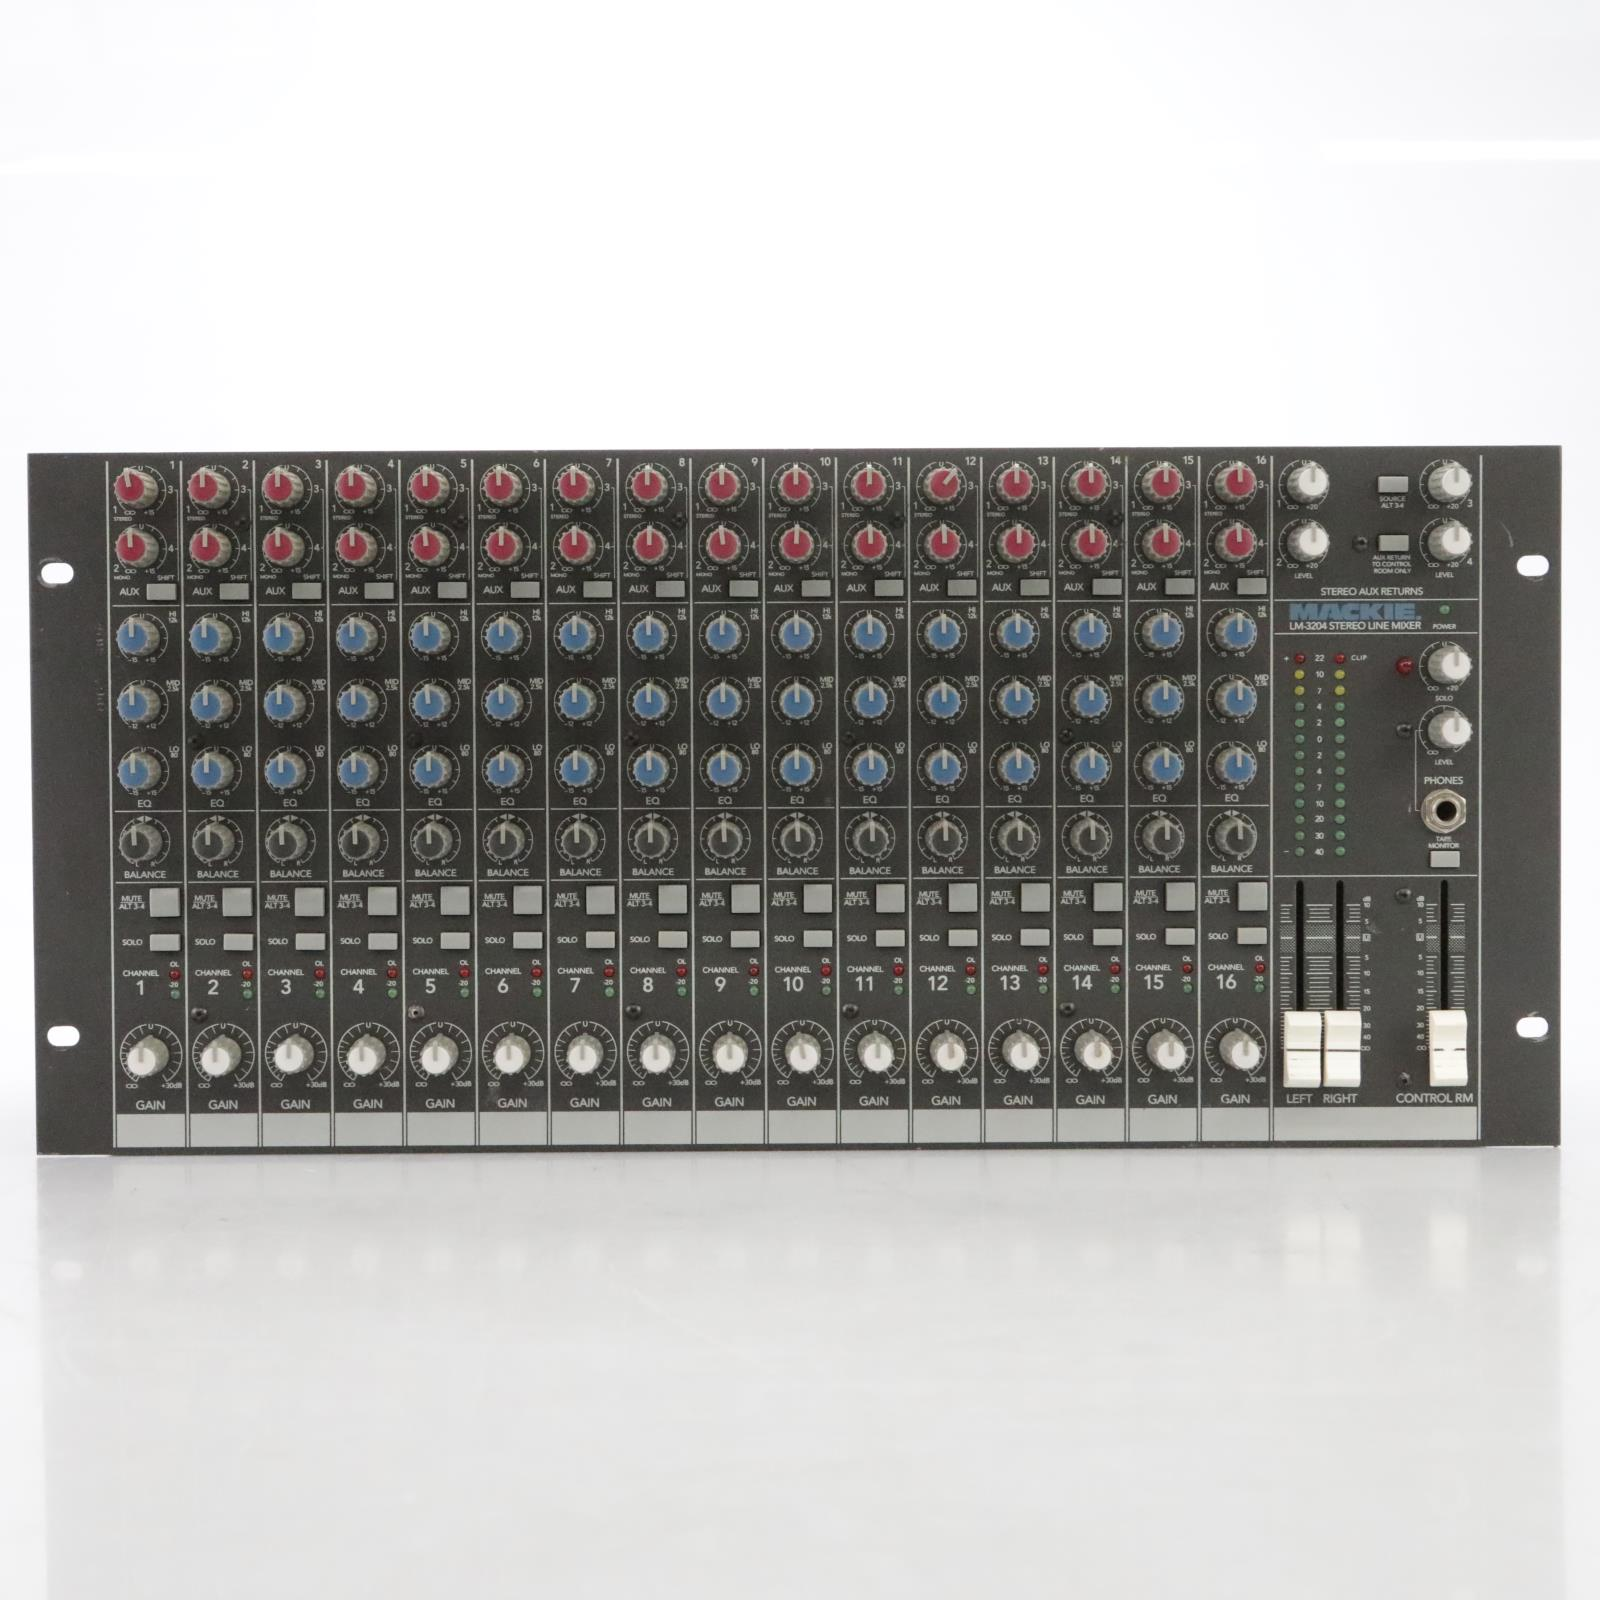 Mackie LM-3204 16-Channel Stereo Line Mixer Rack #44877